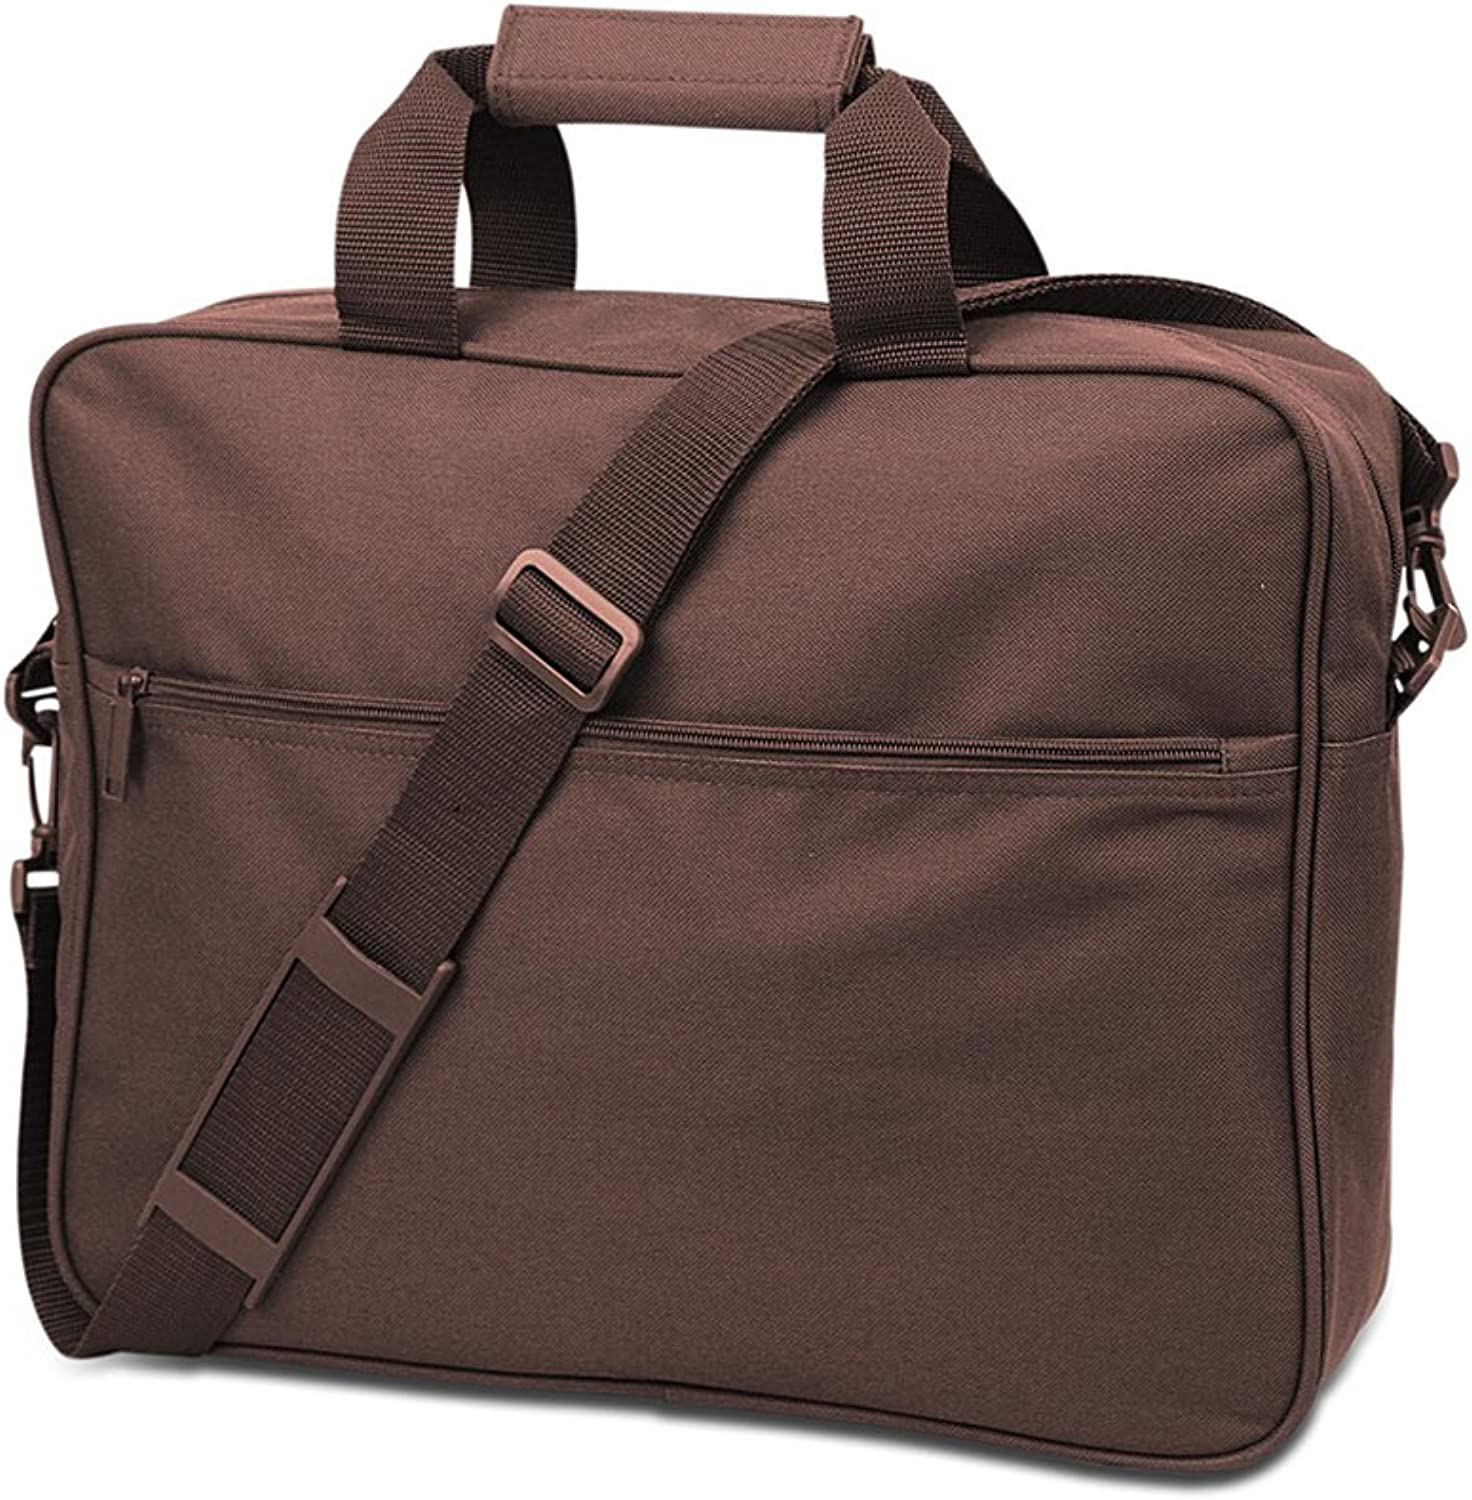 UltraClub Convention Briefcase 7703 -Brown,One Size